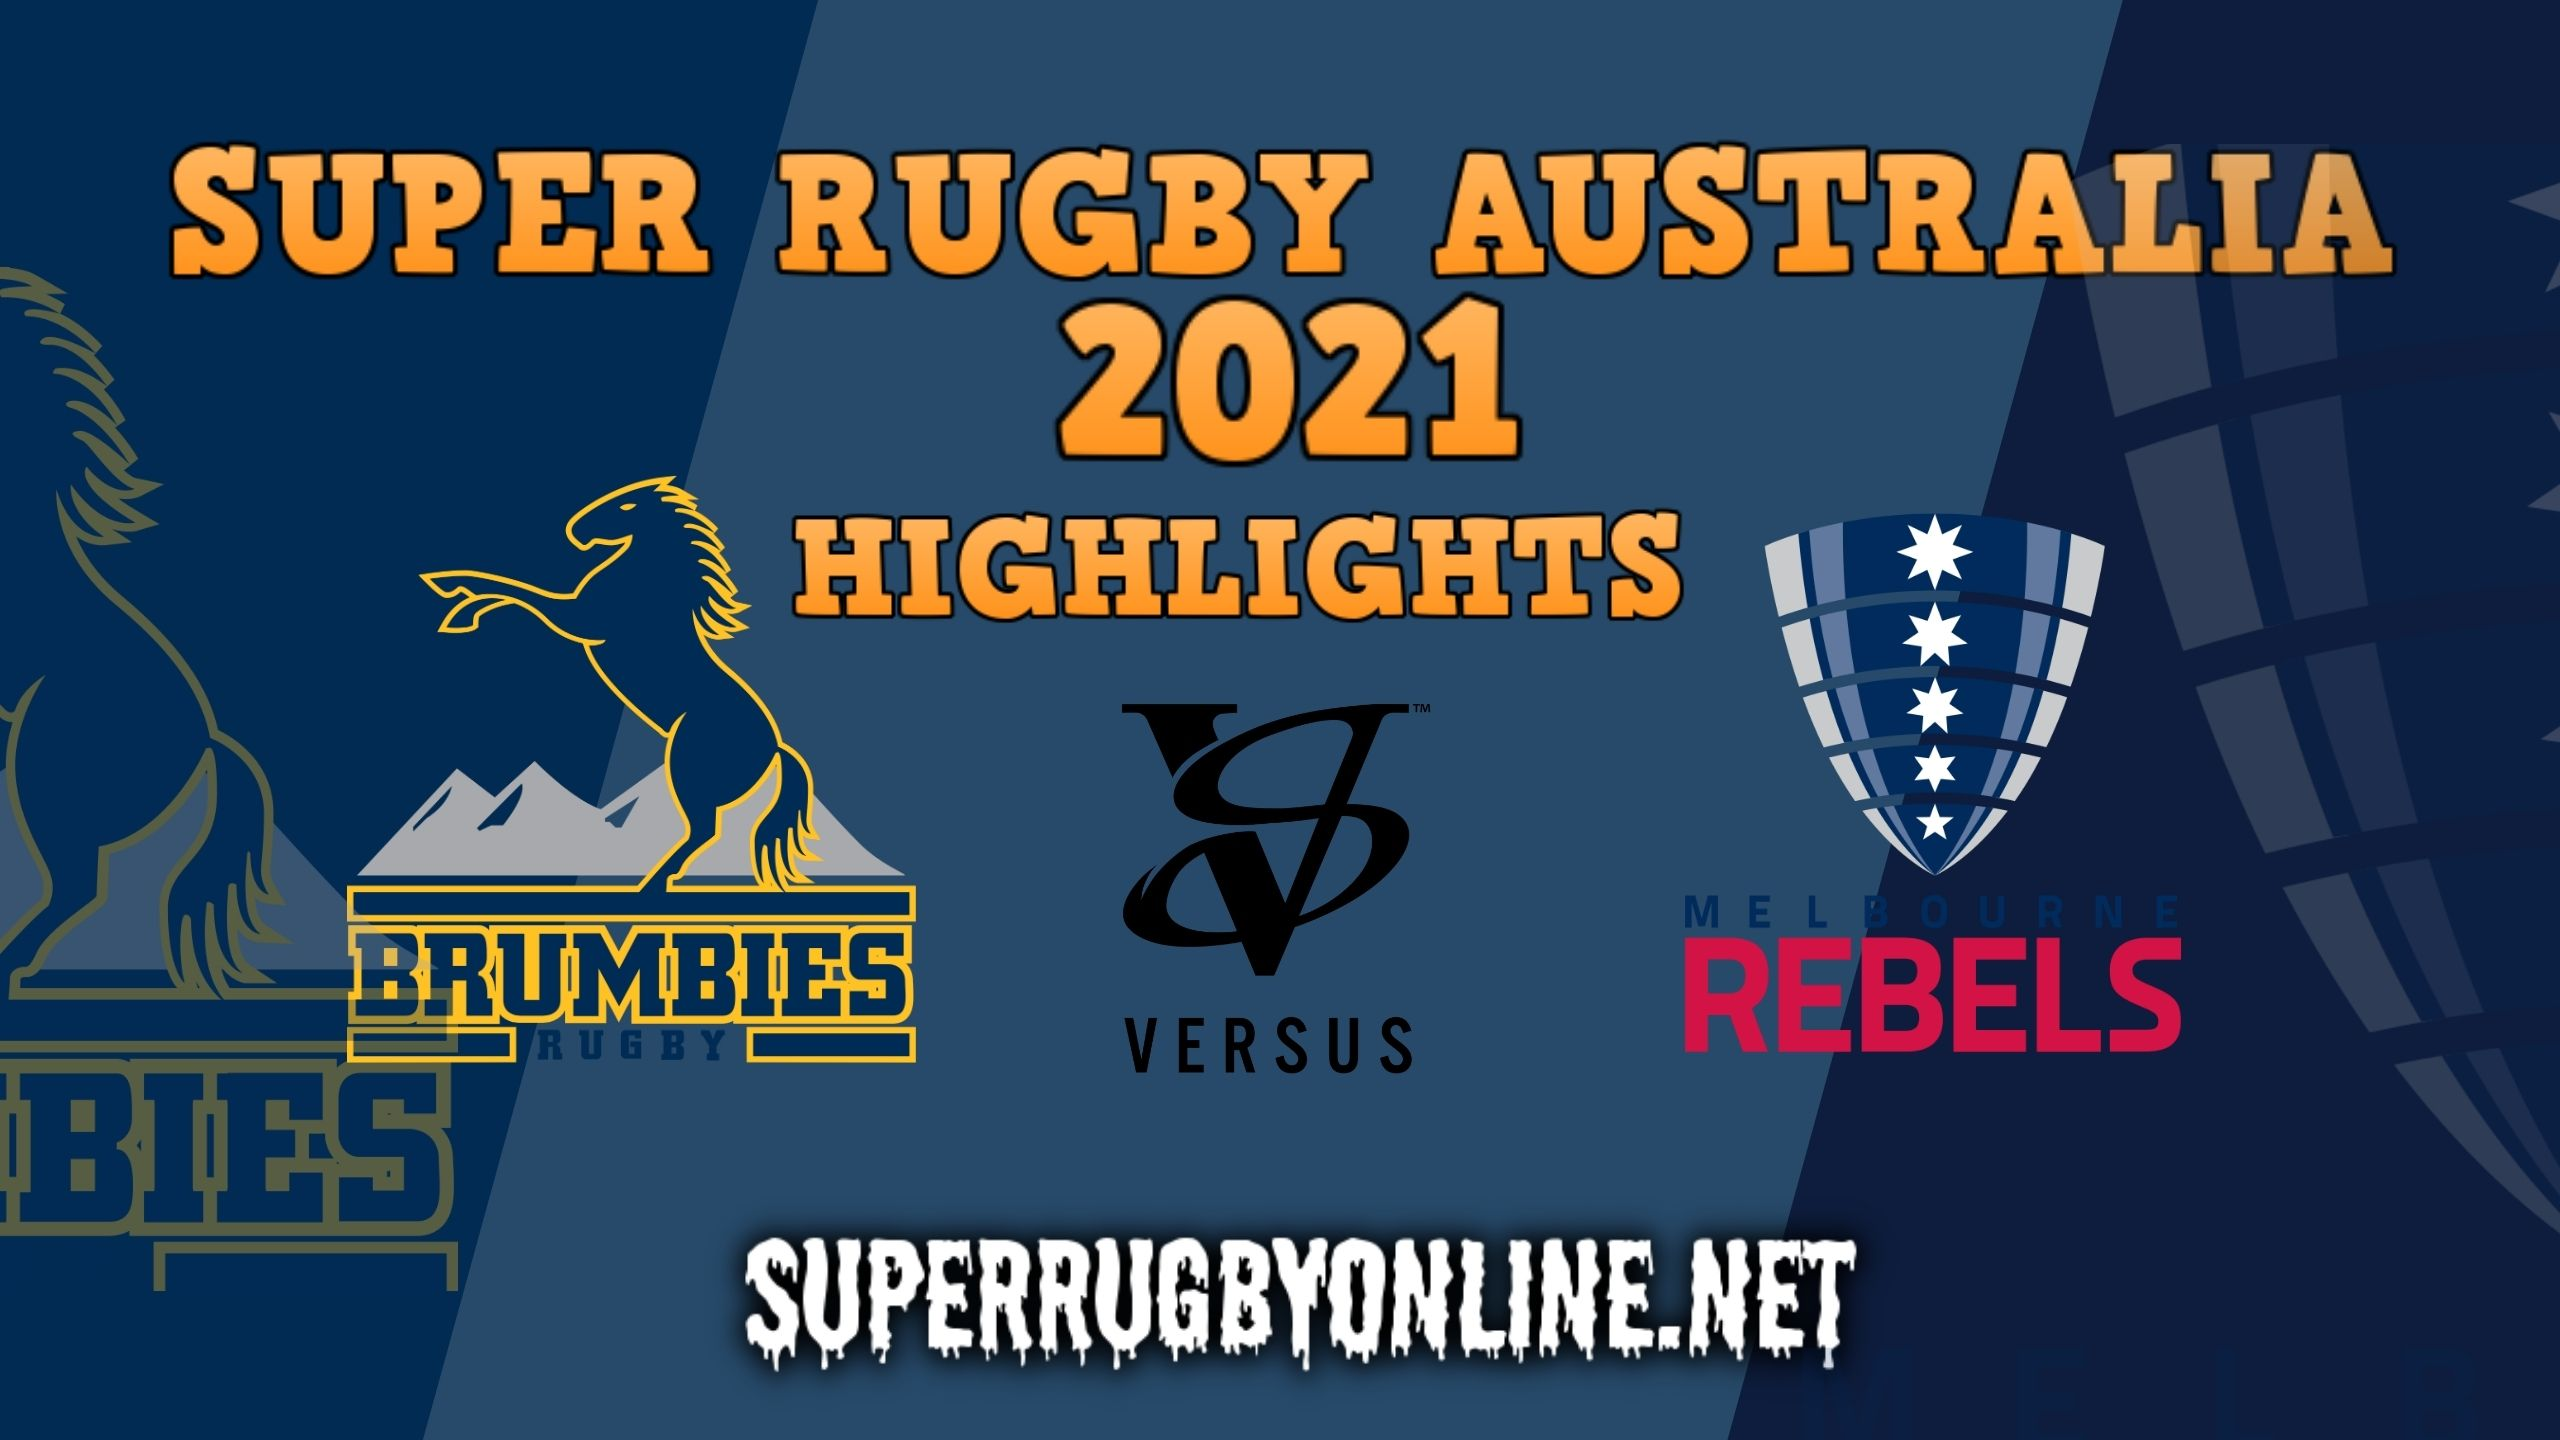 Rebels Vs Brumbies Highlights 2021 Rd 9